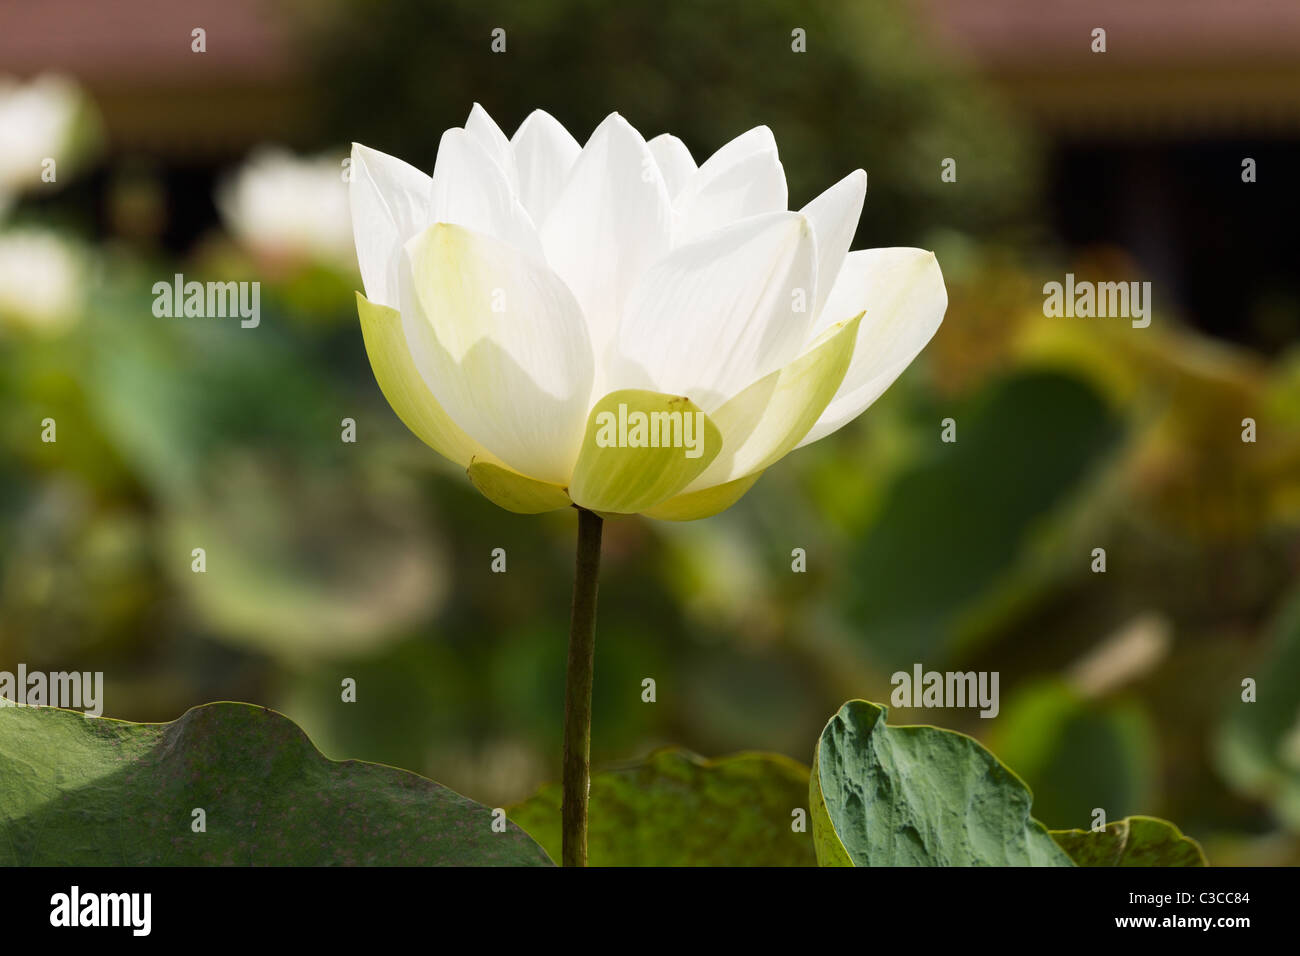 White lotus flower stock photos white lotus flower stock images white lotus flower nelumbo nucifera in a pond inside the royal palace compound in izmirmasajfo